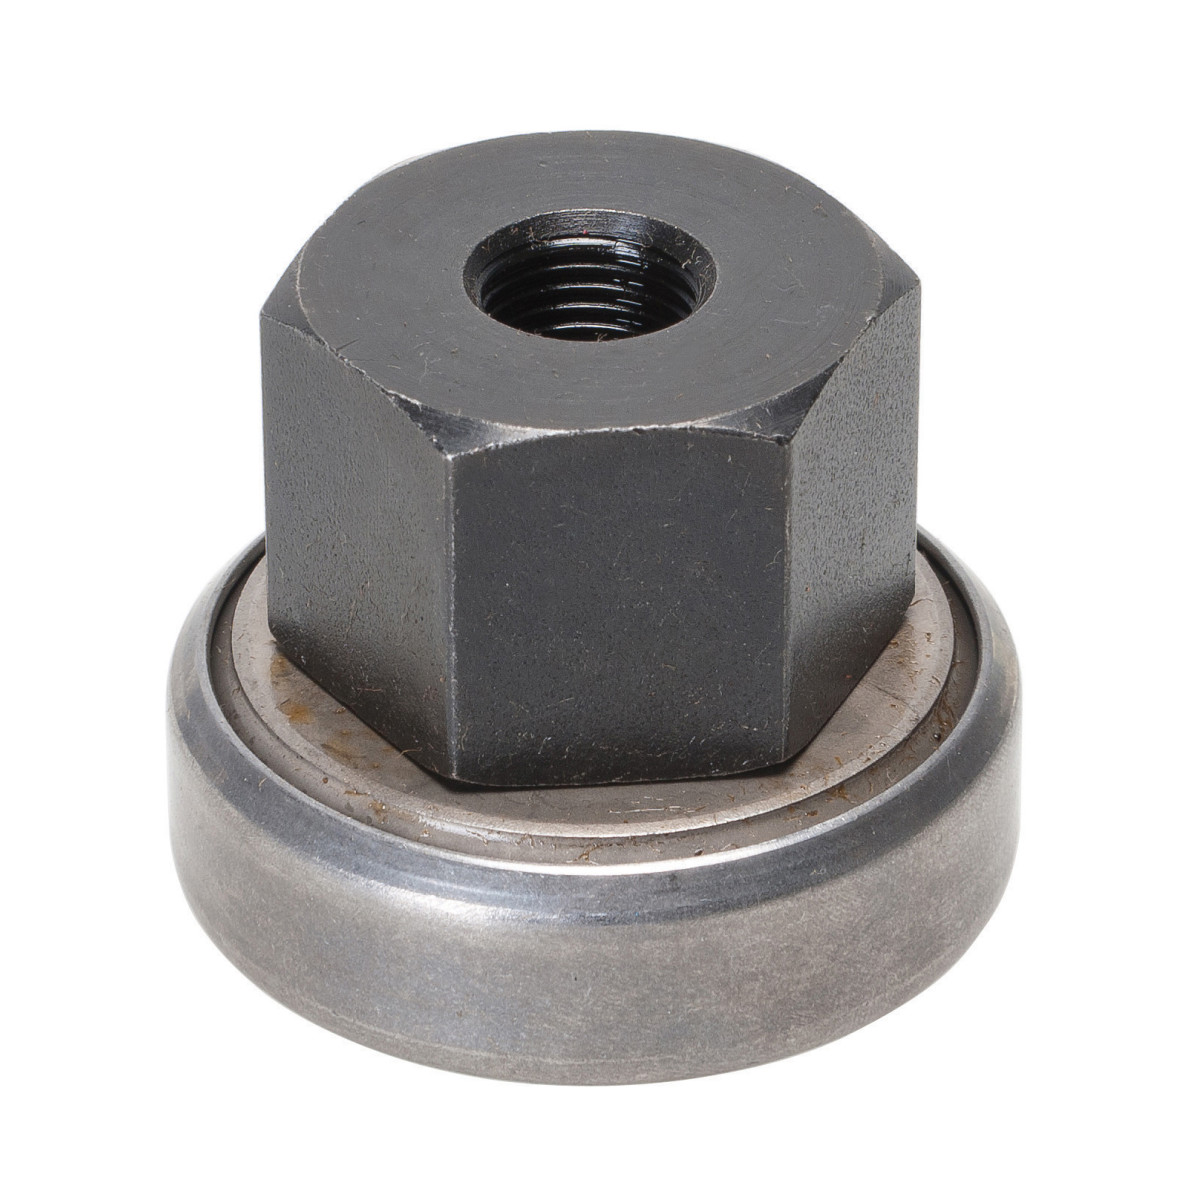 Greenlee 60165 Nut Unit-Hex 1/2-20 Bb (60165)